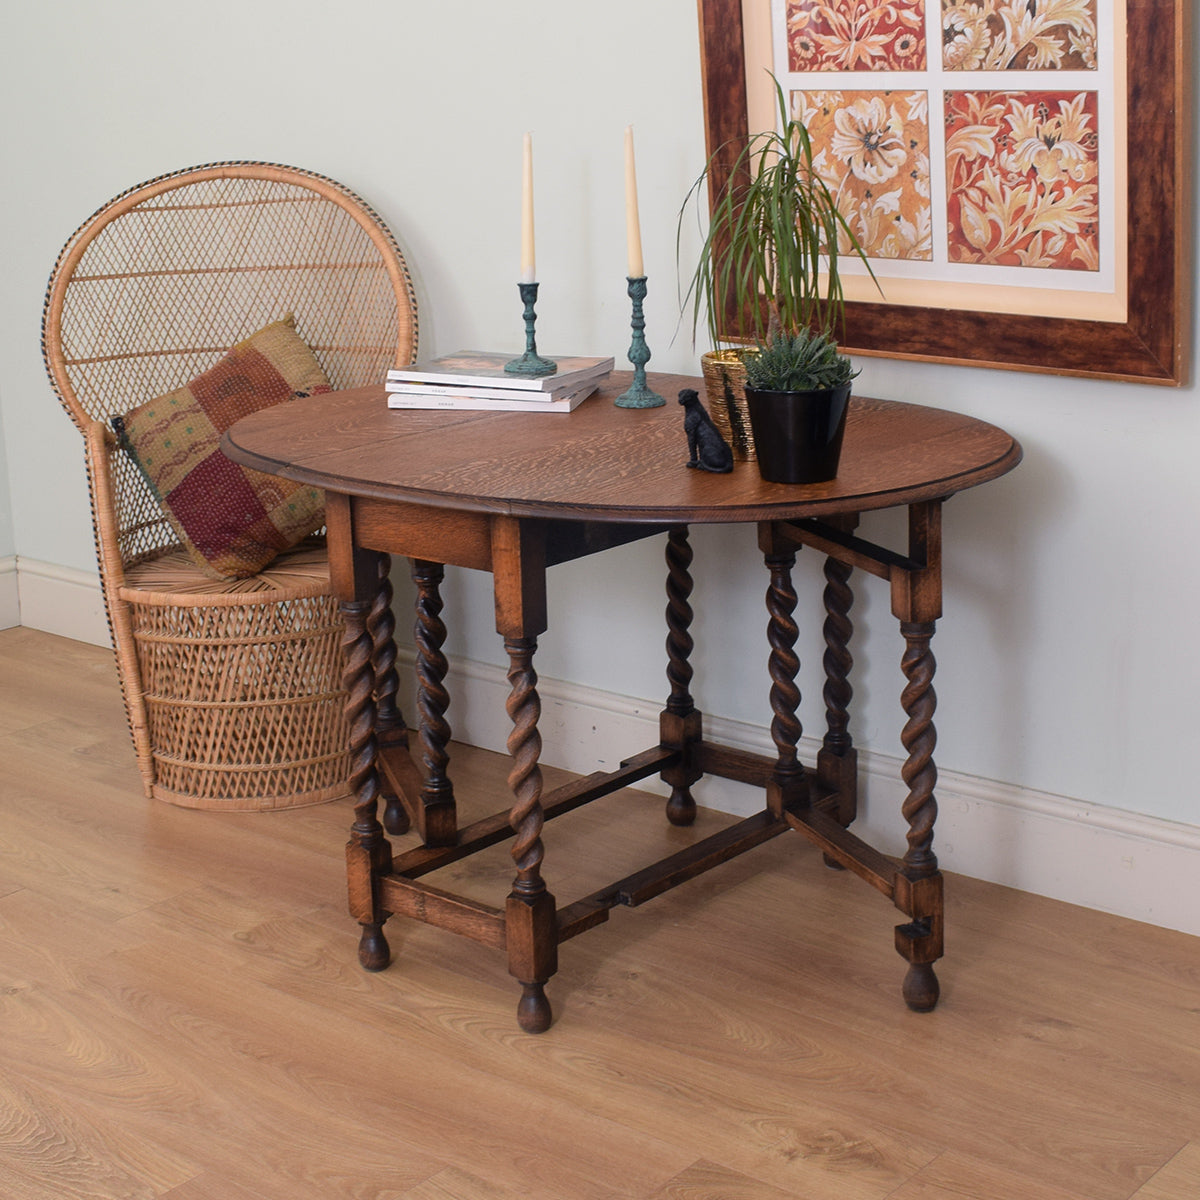 Oak Barley Twist Drop Leaf Table